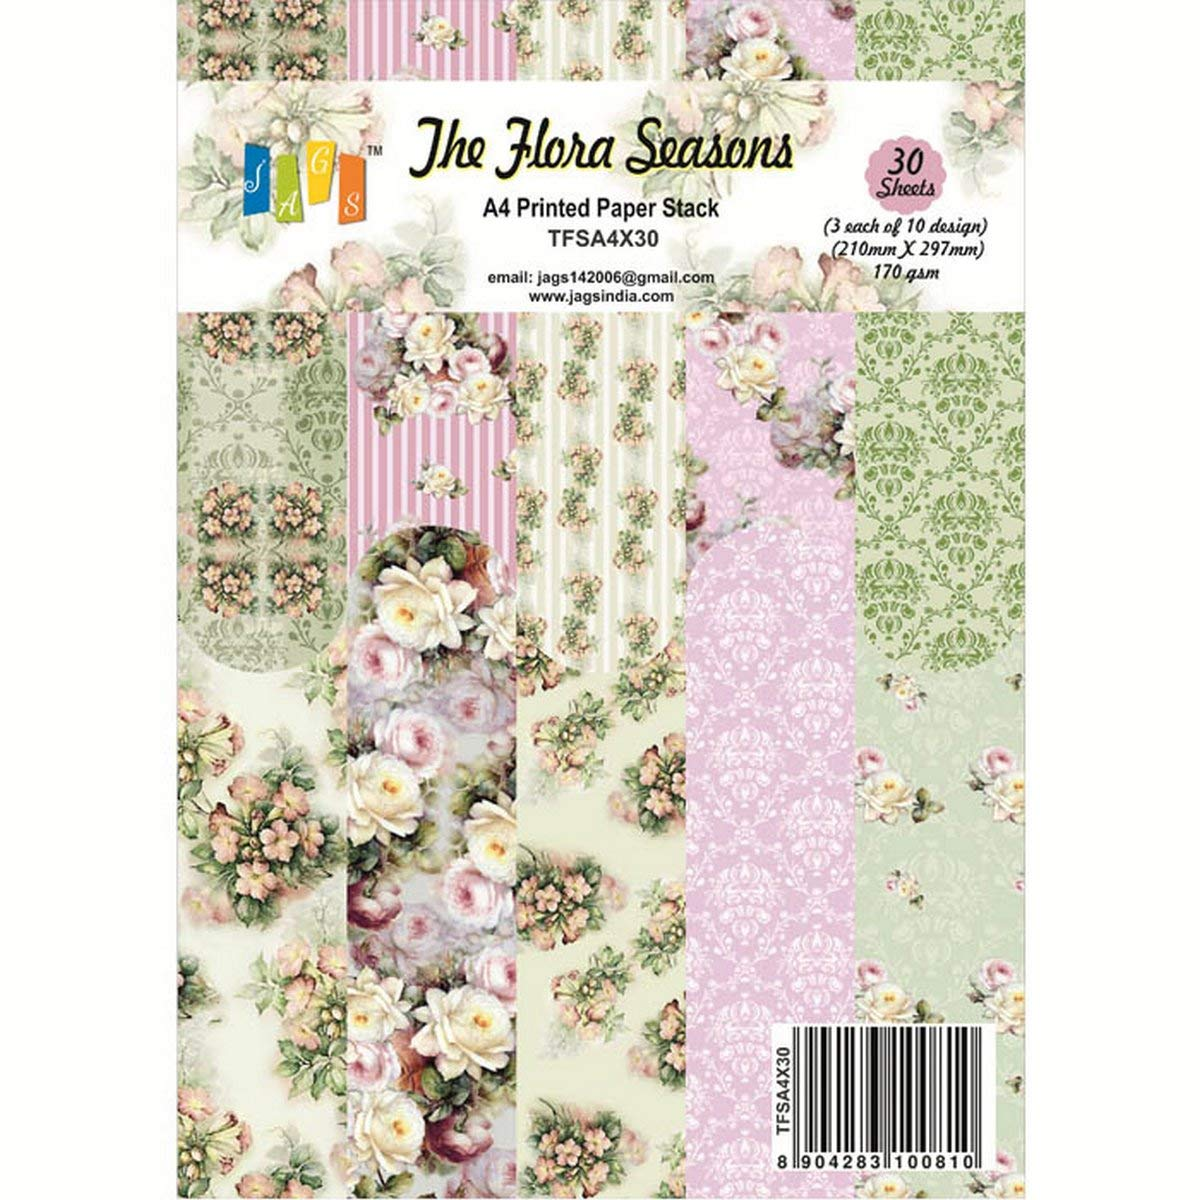 JAGS The Flora Seasons 6x6 Inch Printed Paper for Crafts 3 Sheets Each of 10 Designs for Making DIY Greetings and Scrapbooking Pack of 30